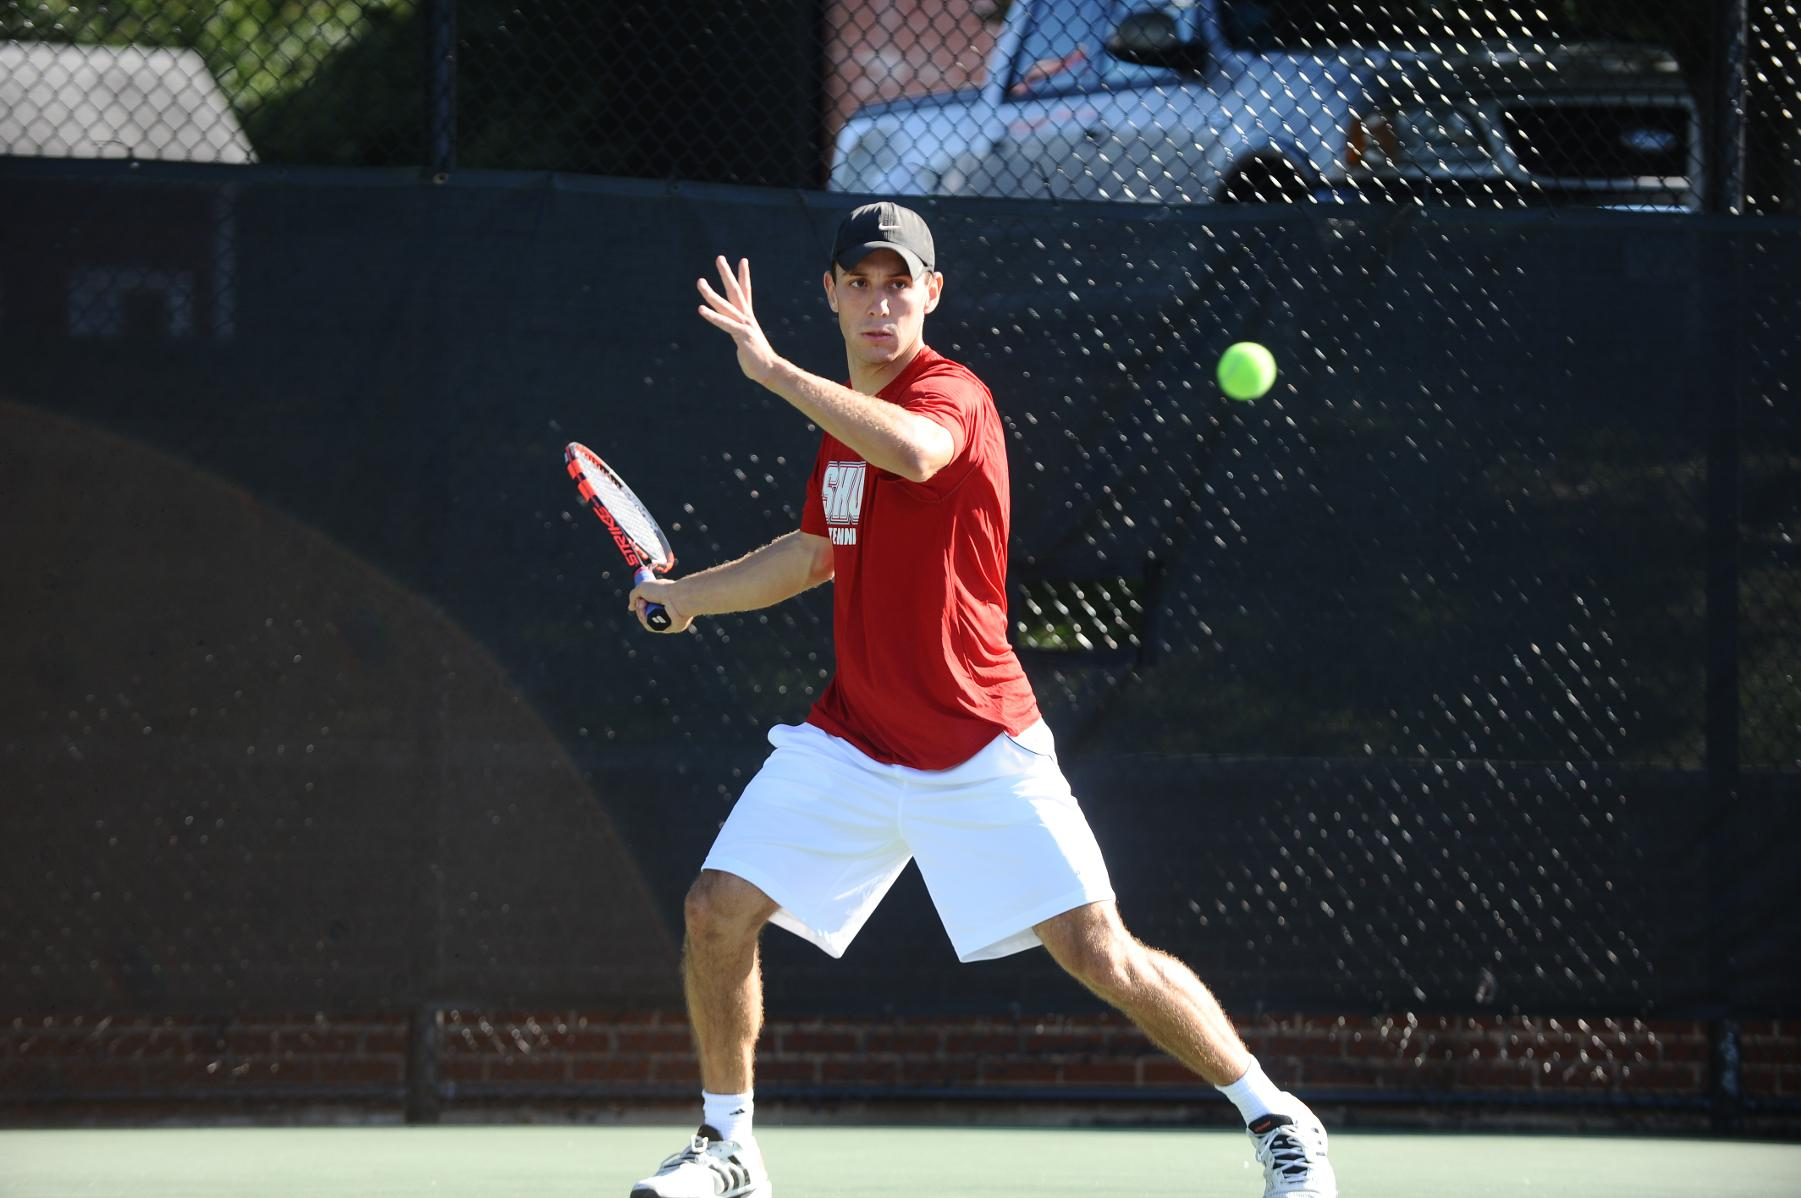 Men's Tennis Drops Heartbreaker in NEC Quarterfinals